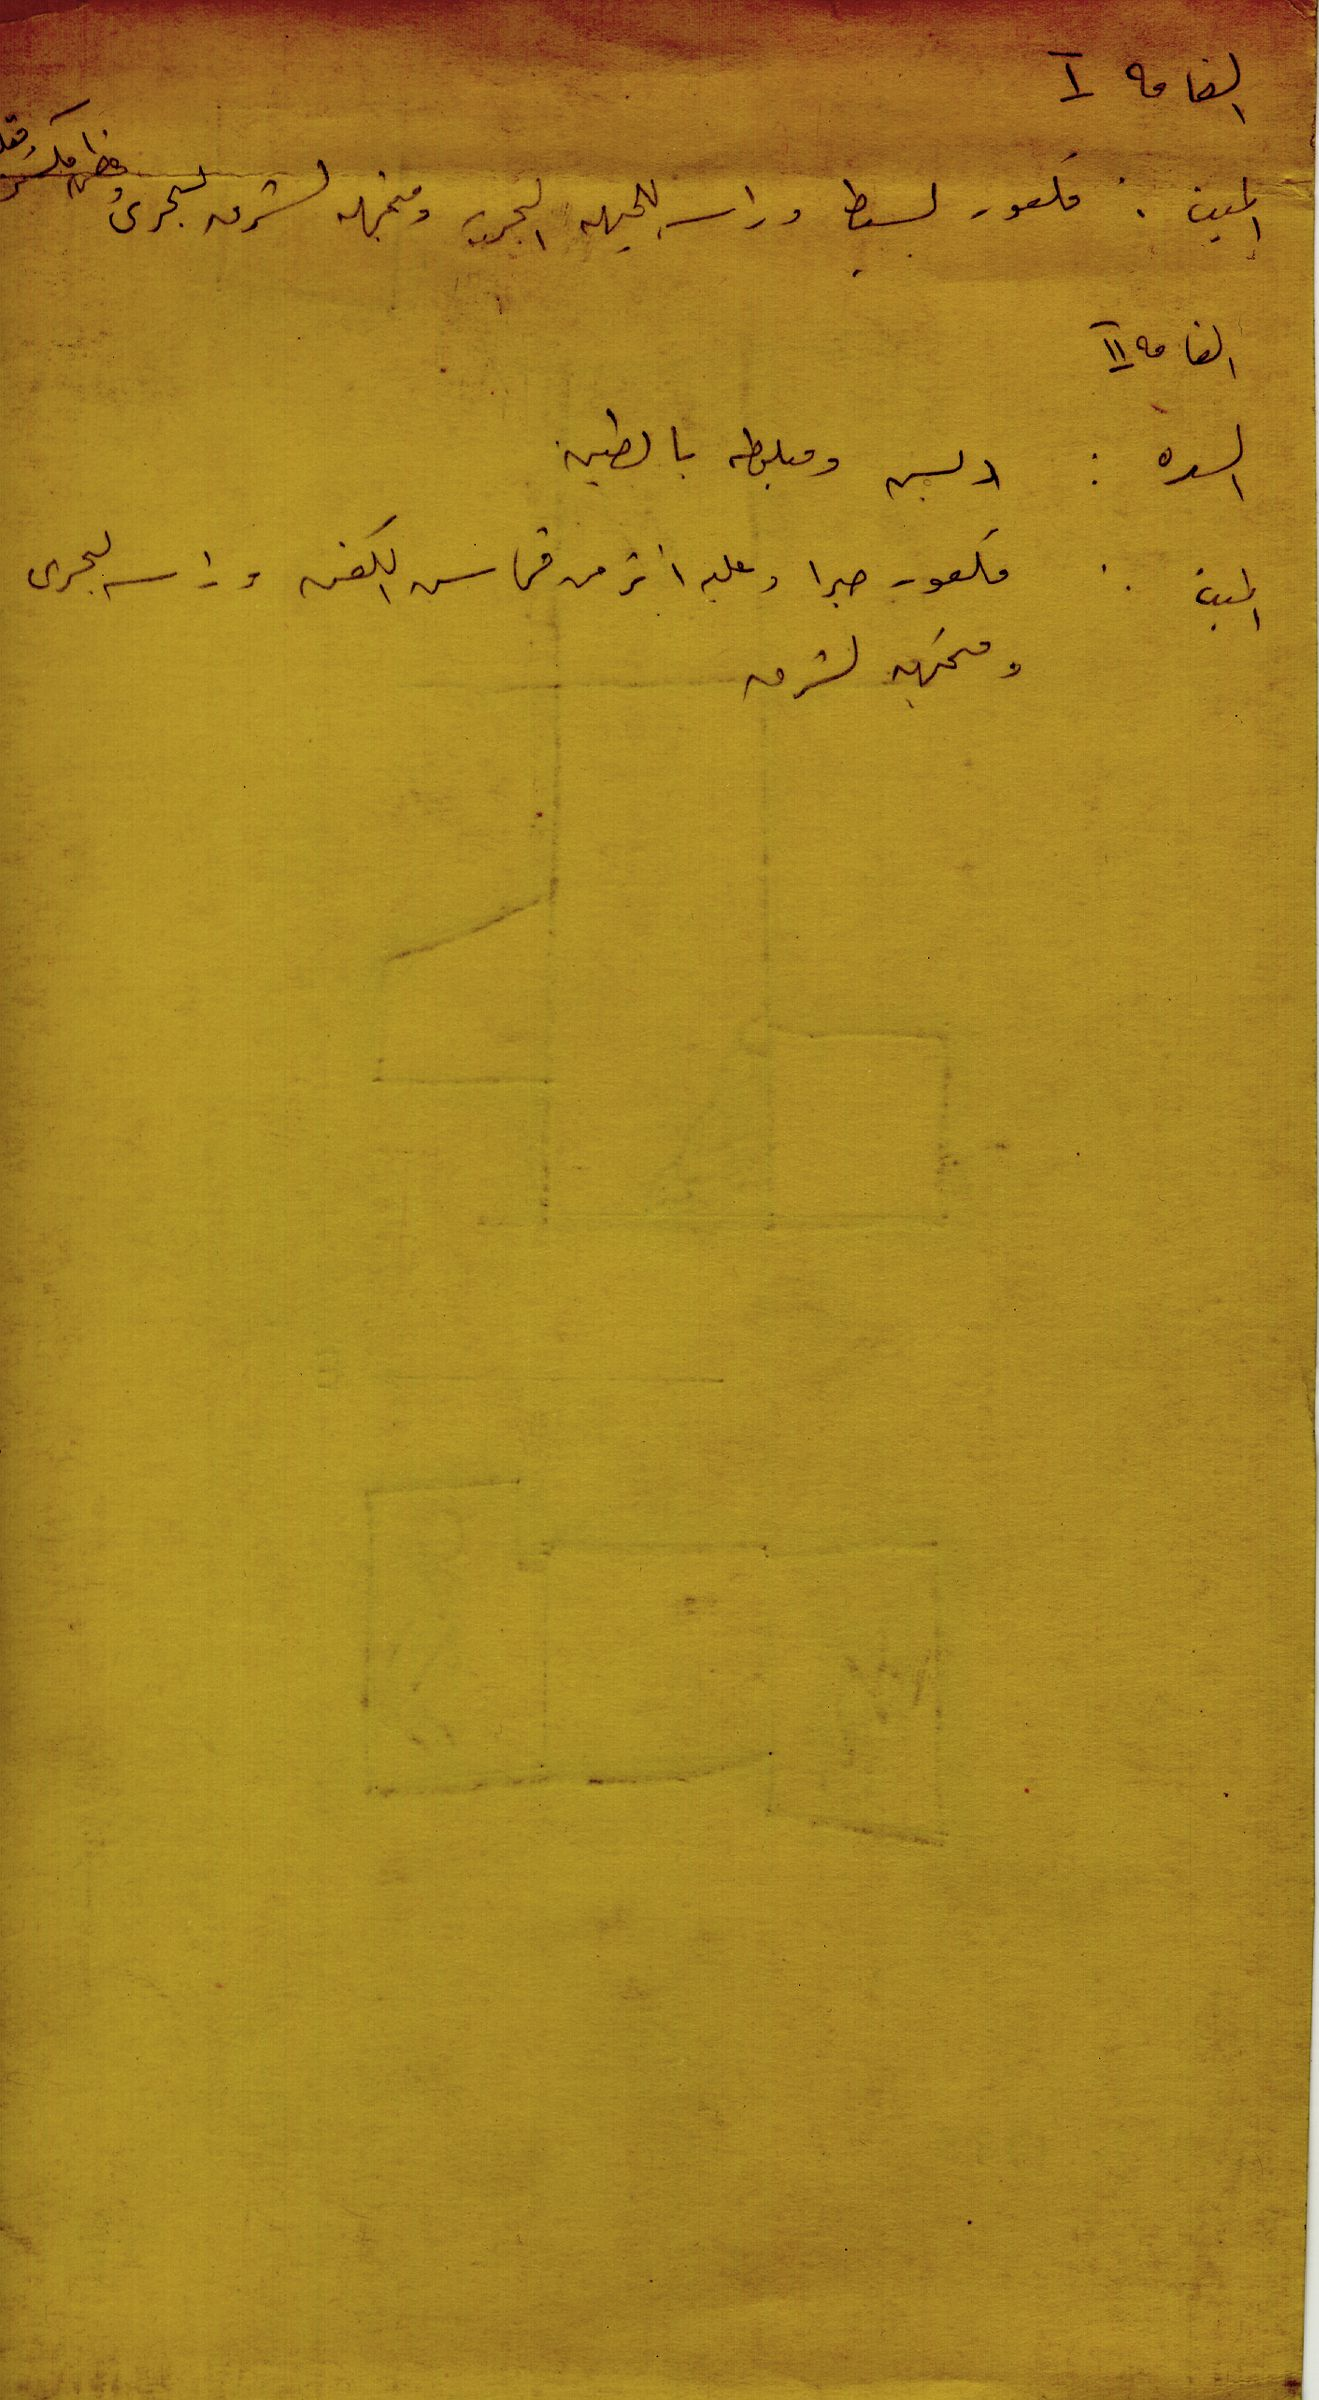 Notes: G 1366, Shaft A, notes (in Arabic)